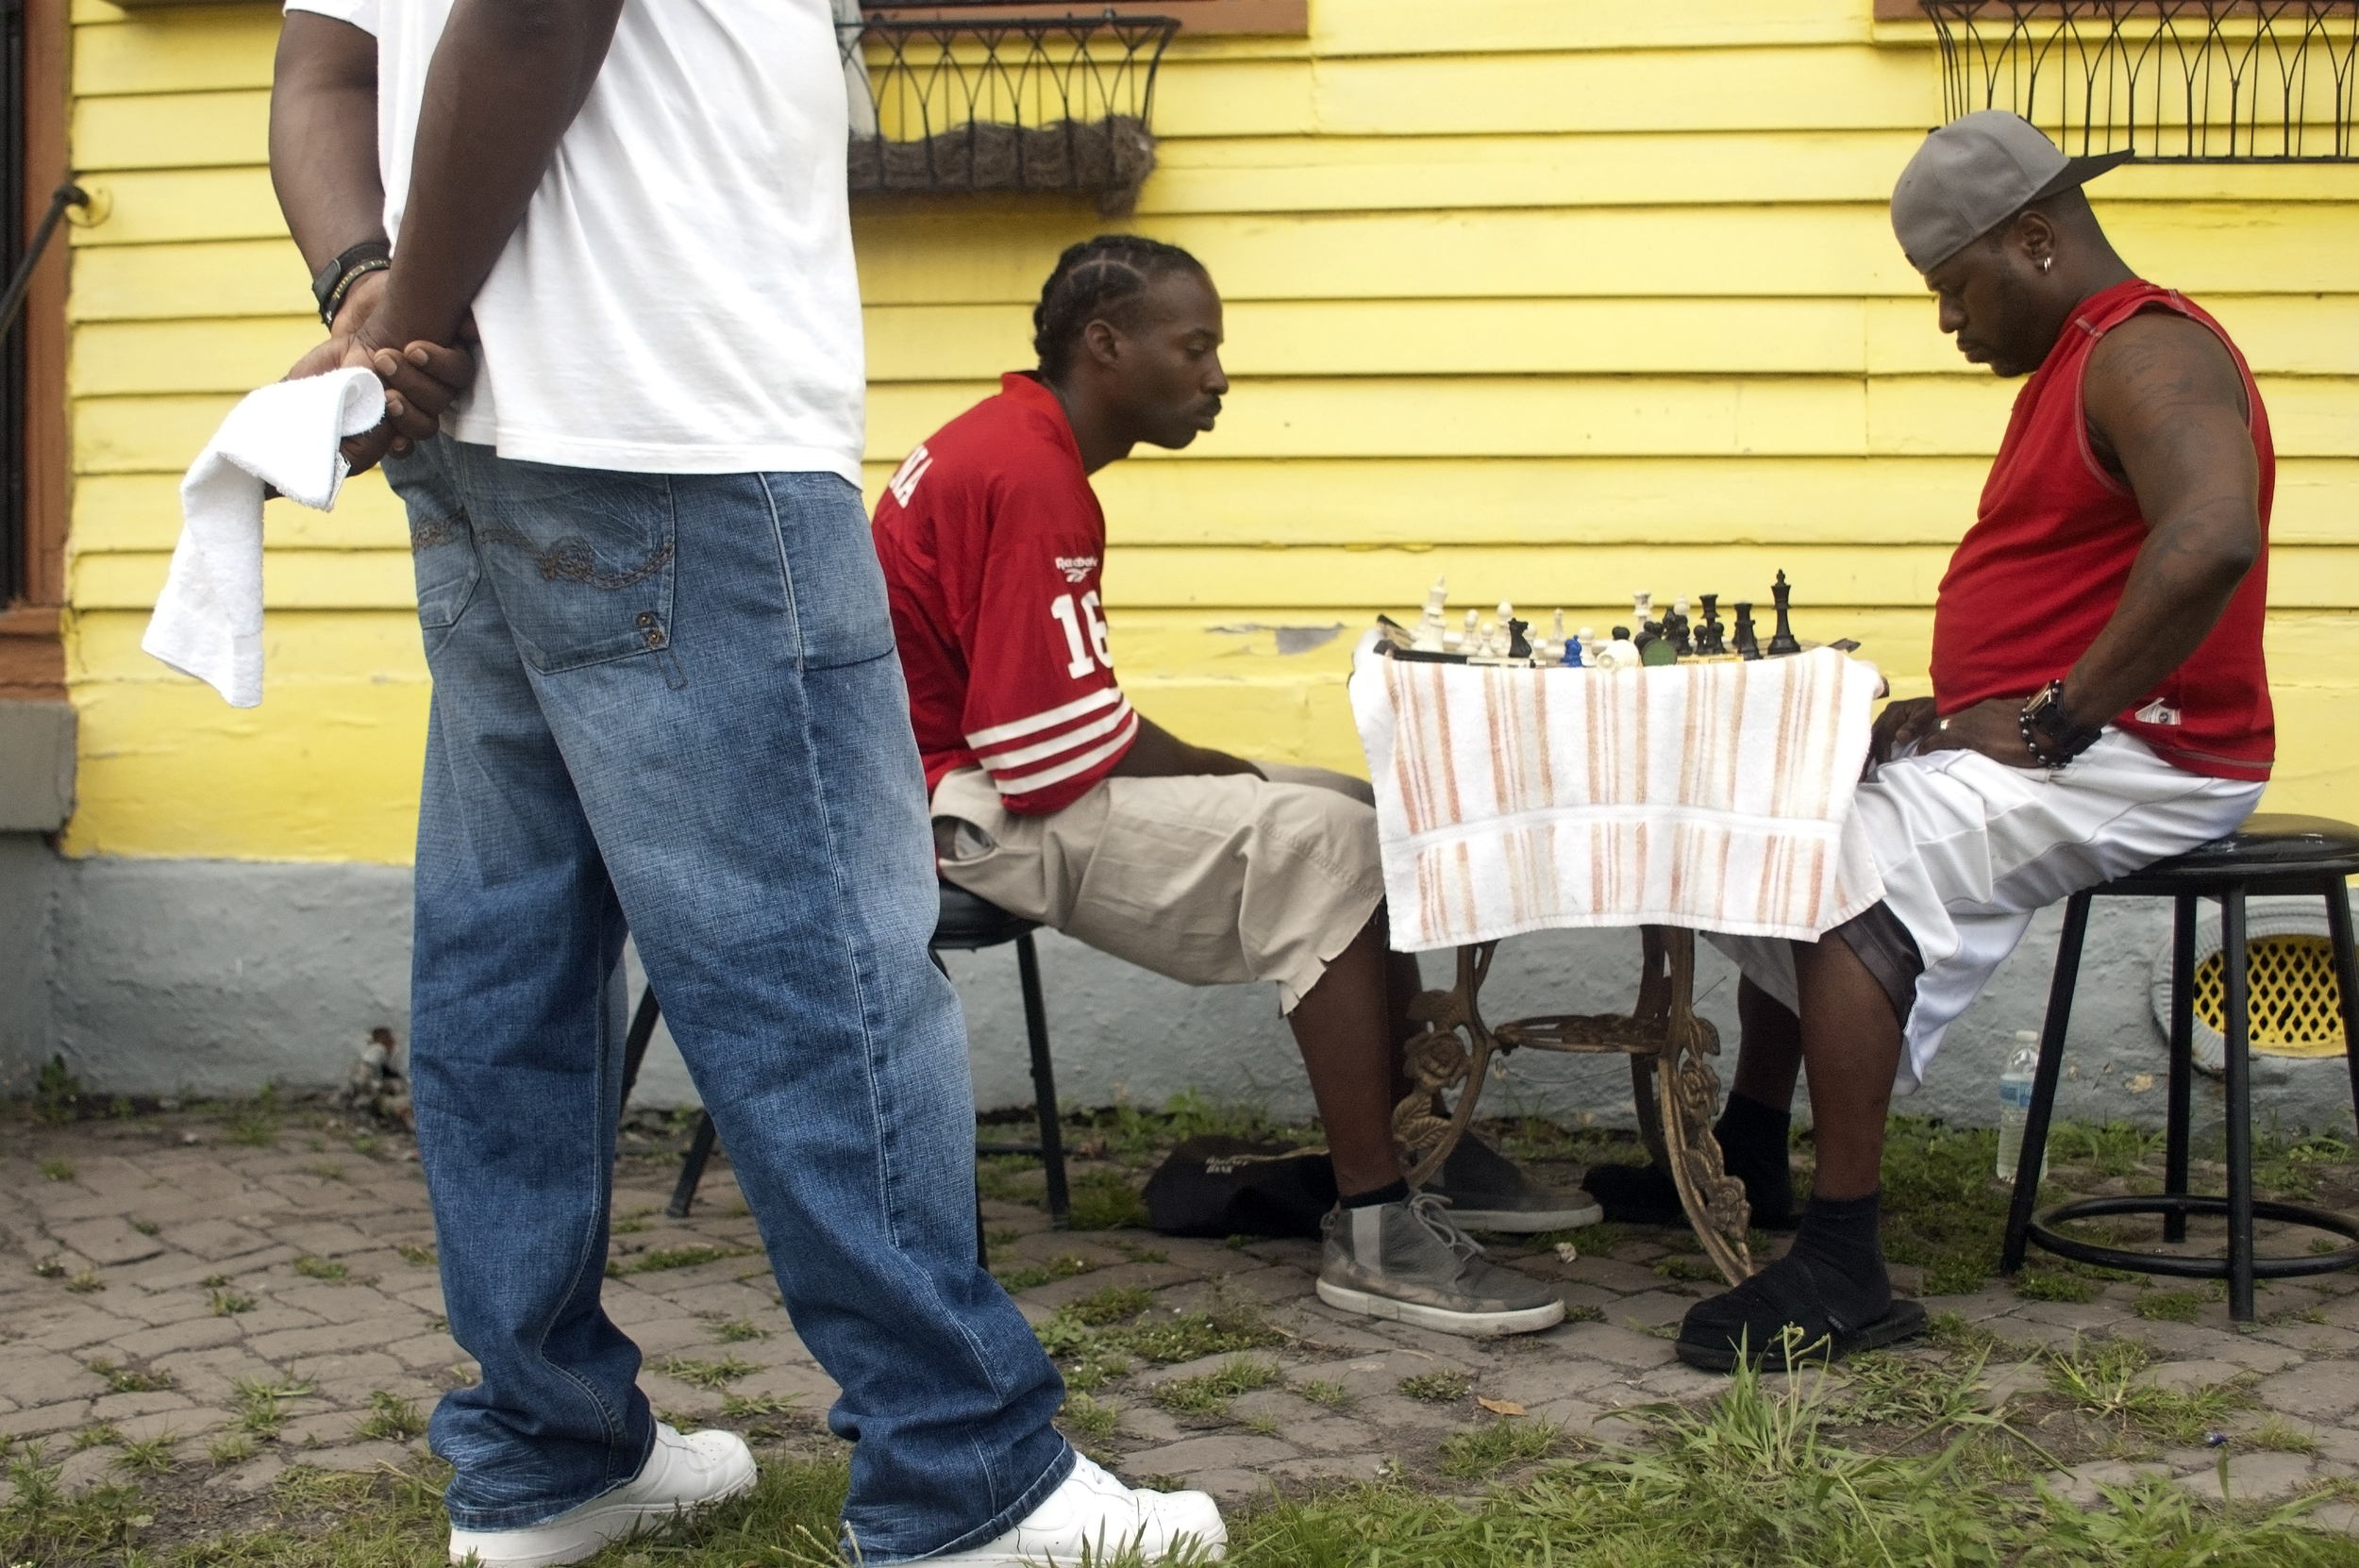 6-23-13 Chess in the 7th Ward  0033 copy.JPG